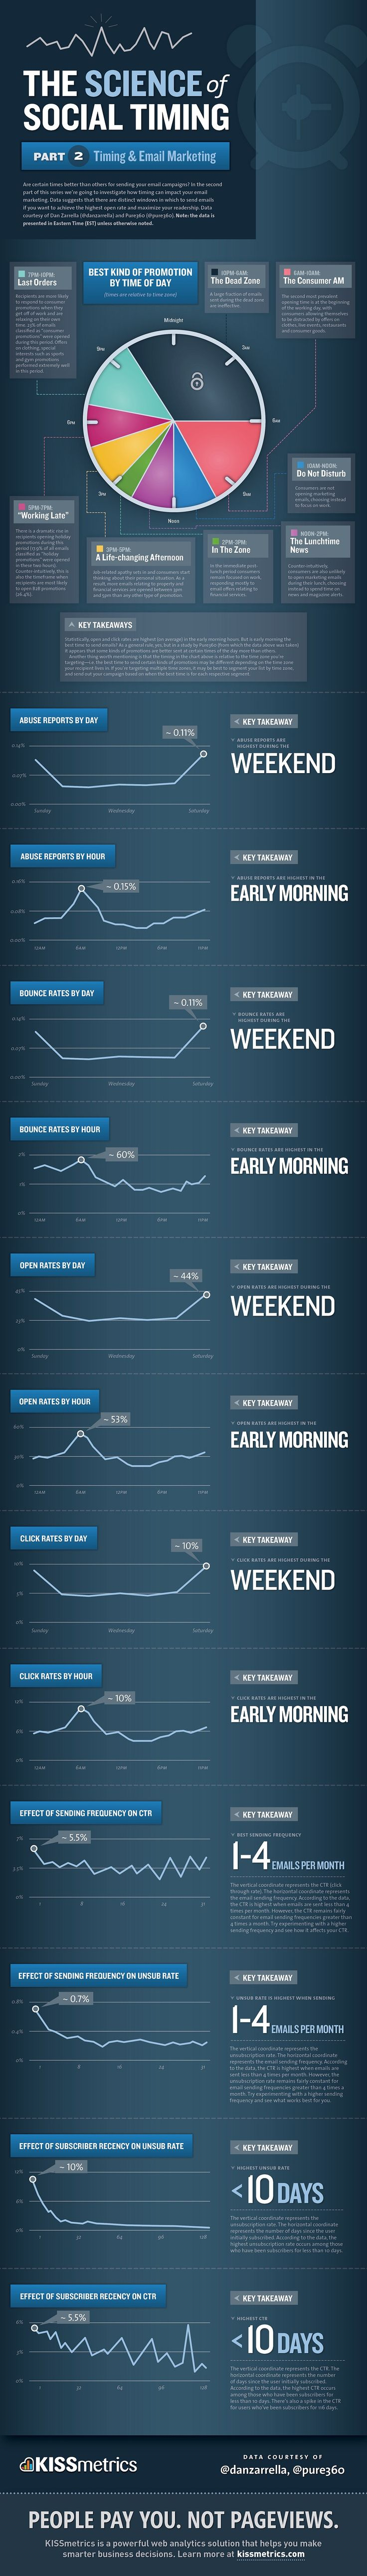 The-Science-Of-Social-Timing-In-Email-Marketing-infographic